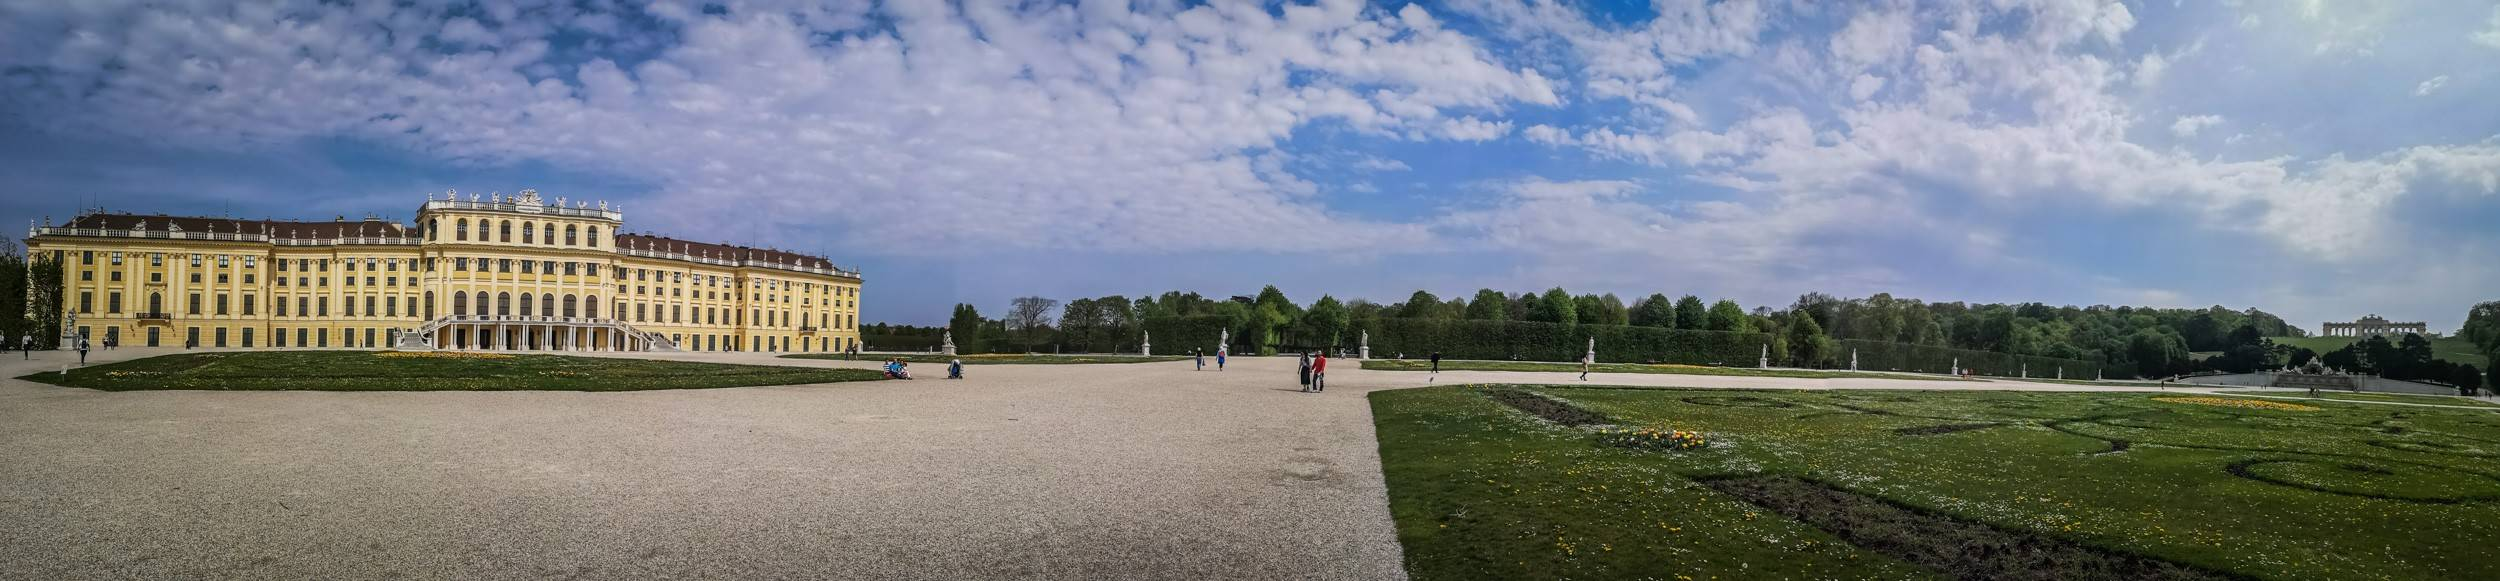 The Gloriette, the Great Parterre & Schönbrunn Palace, Vienna